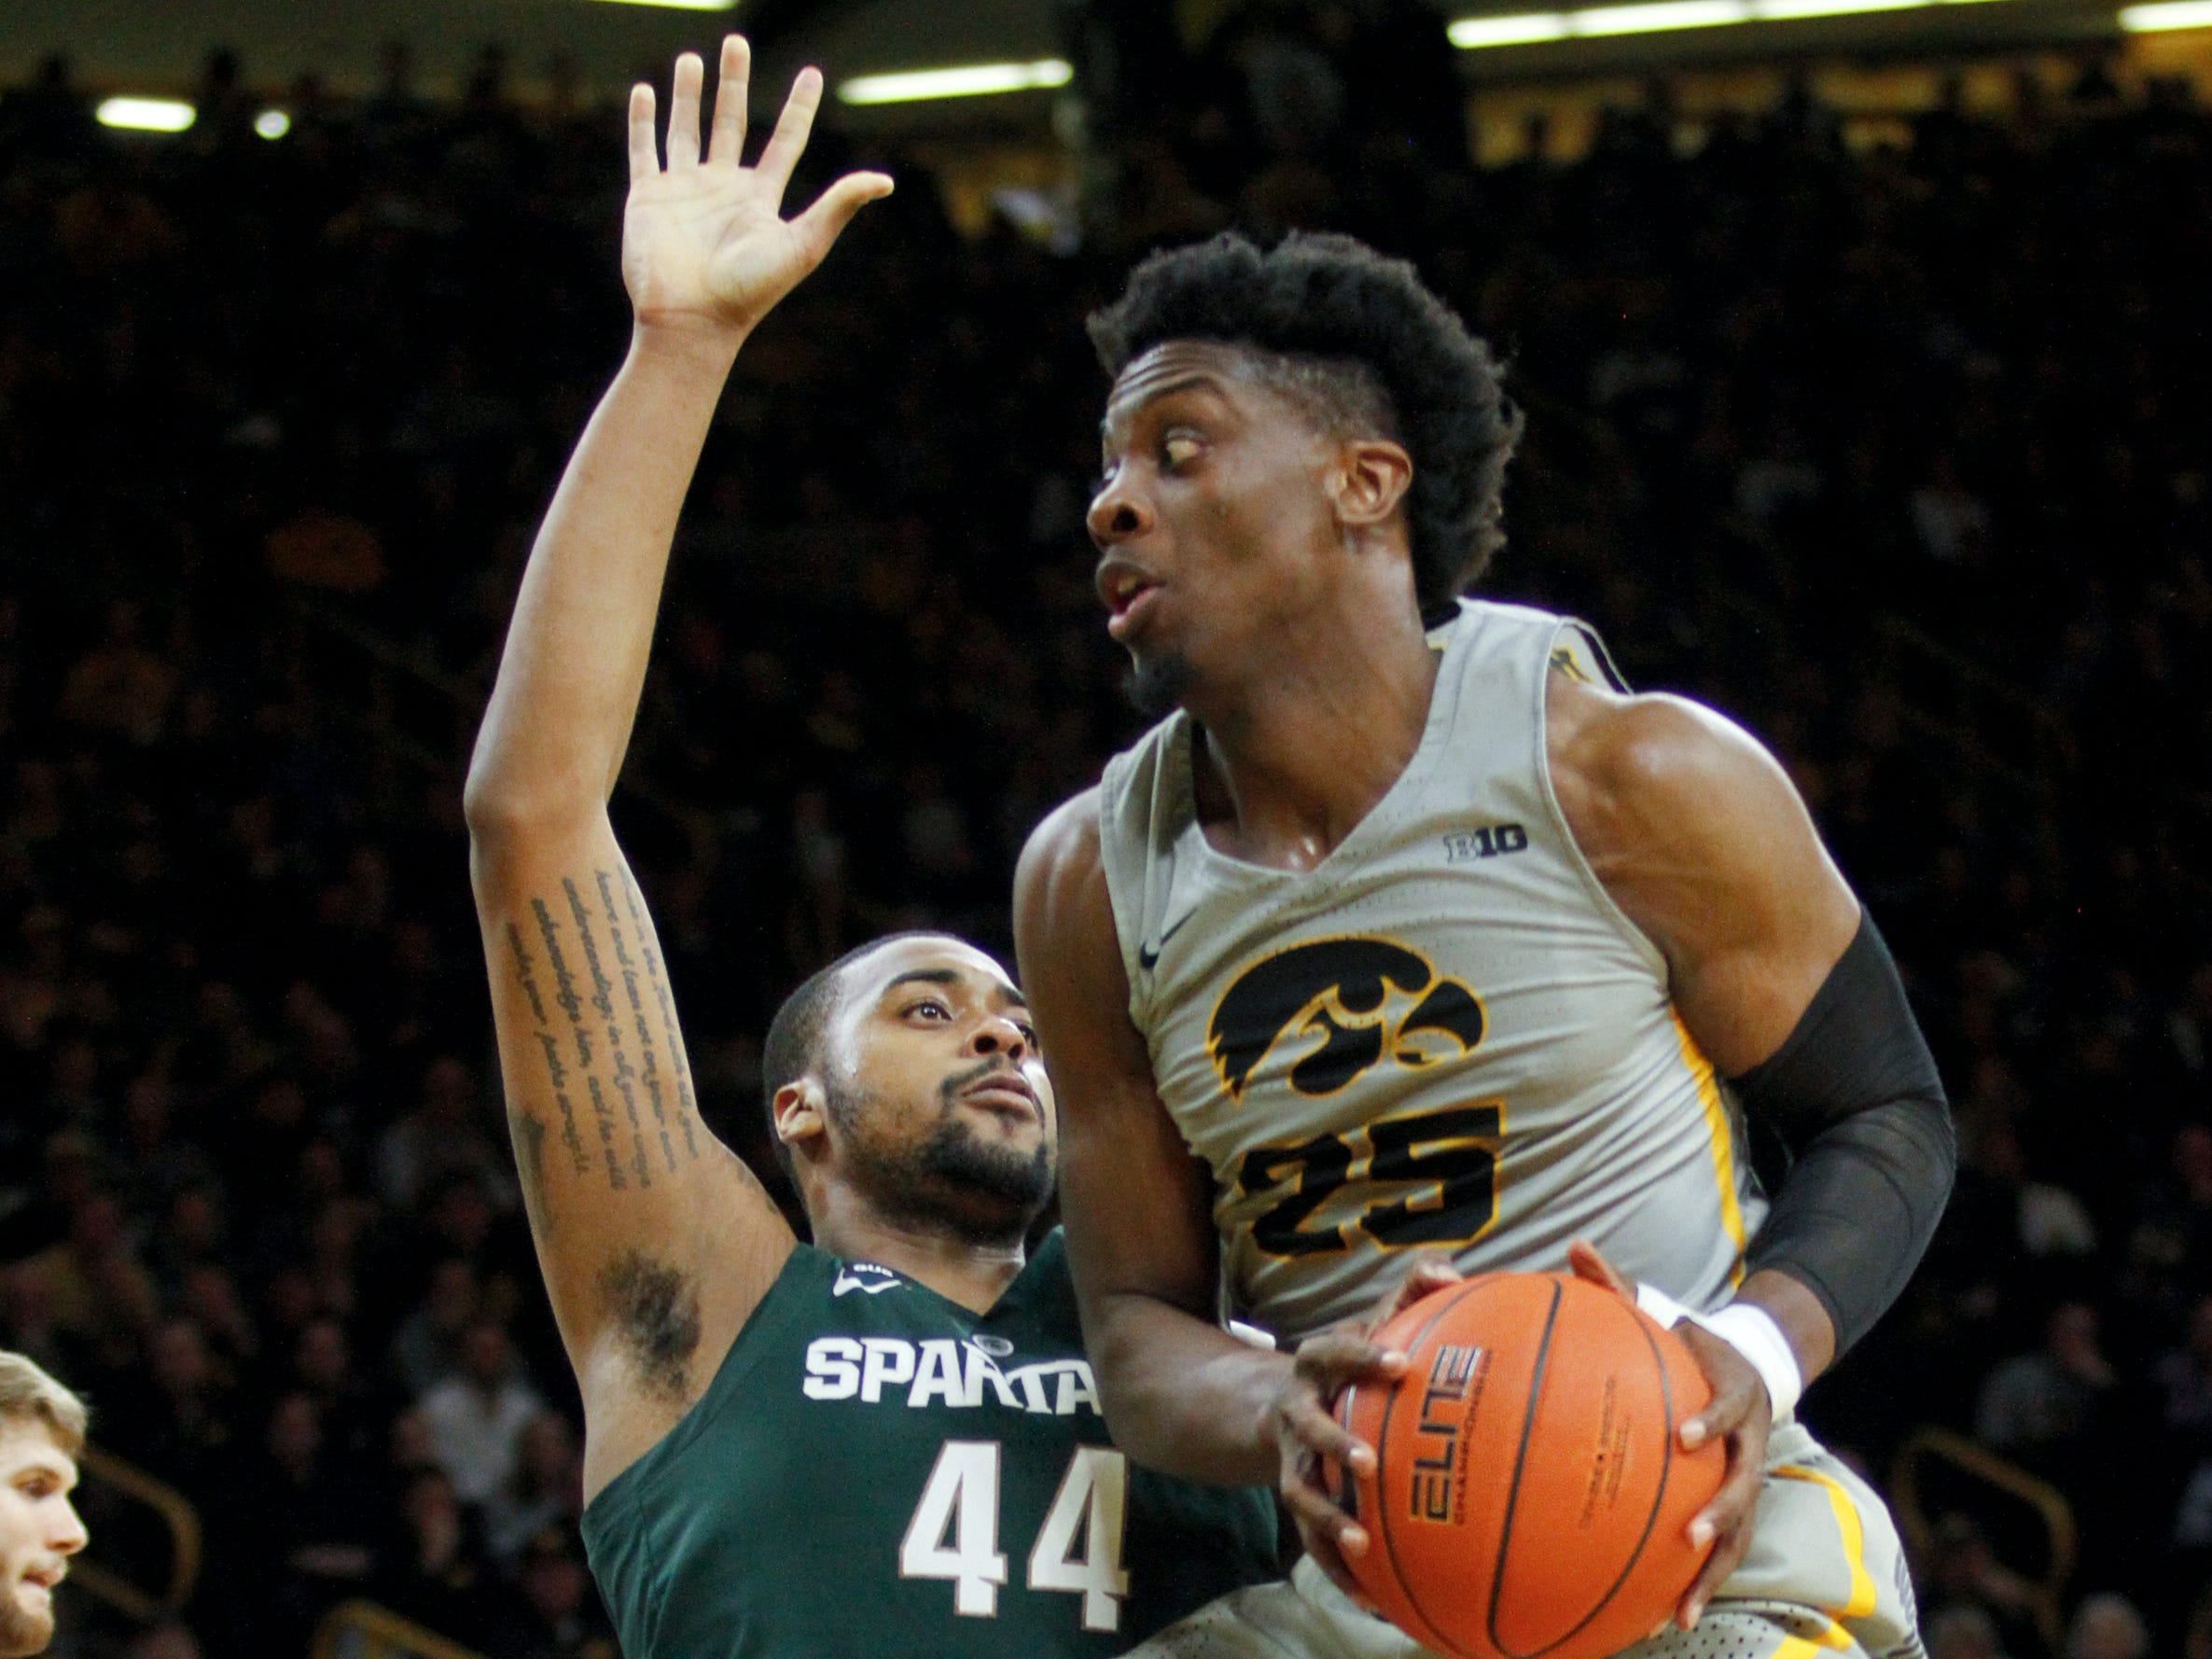 Forward Tyler Cook #25 of the Iowa Hawkeyes goes to the basket in the first half against forward Nick Ward #44 of the Michigan State Spartans on January 24, 2019 at Carver-Hawkeye Arena, in Iowa City, Iowa.